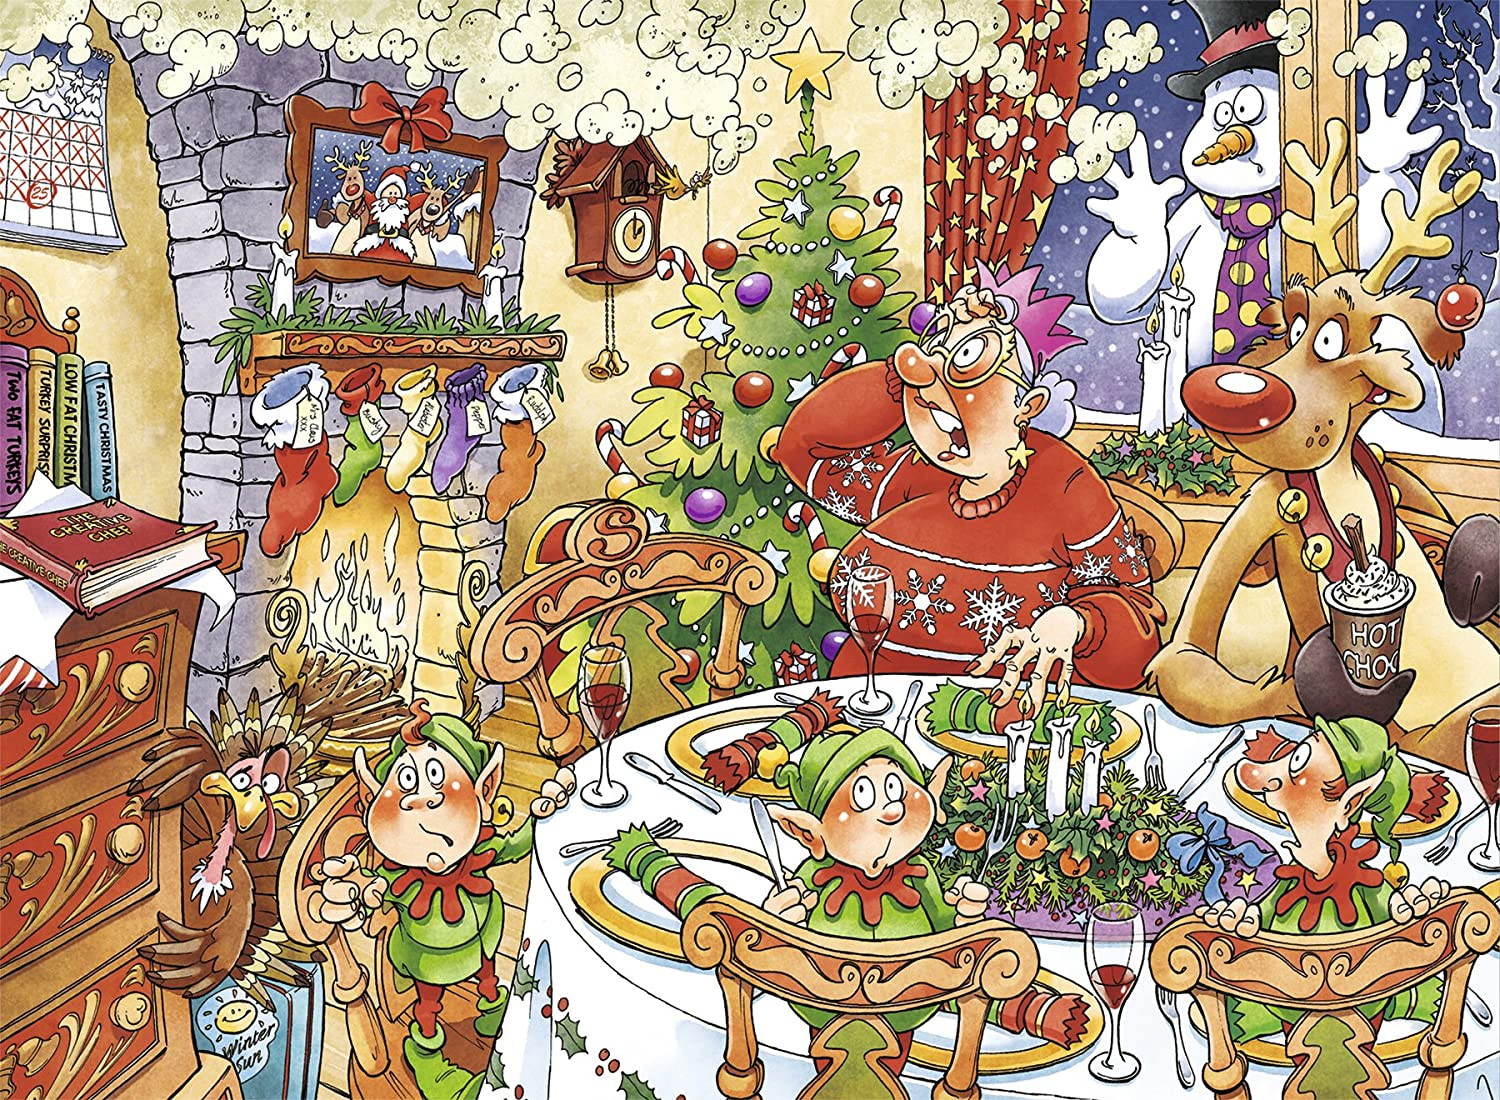 Jumbo - Wasgij Christmas 13 Turkish Delight International Item Puzzle de 1000 Piezas (619149.0): Amazon.es: Juguetes y juegos